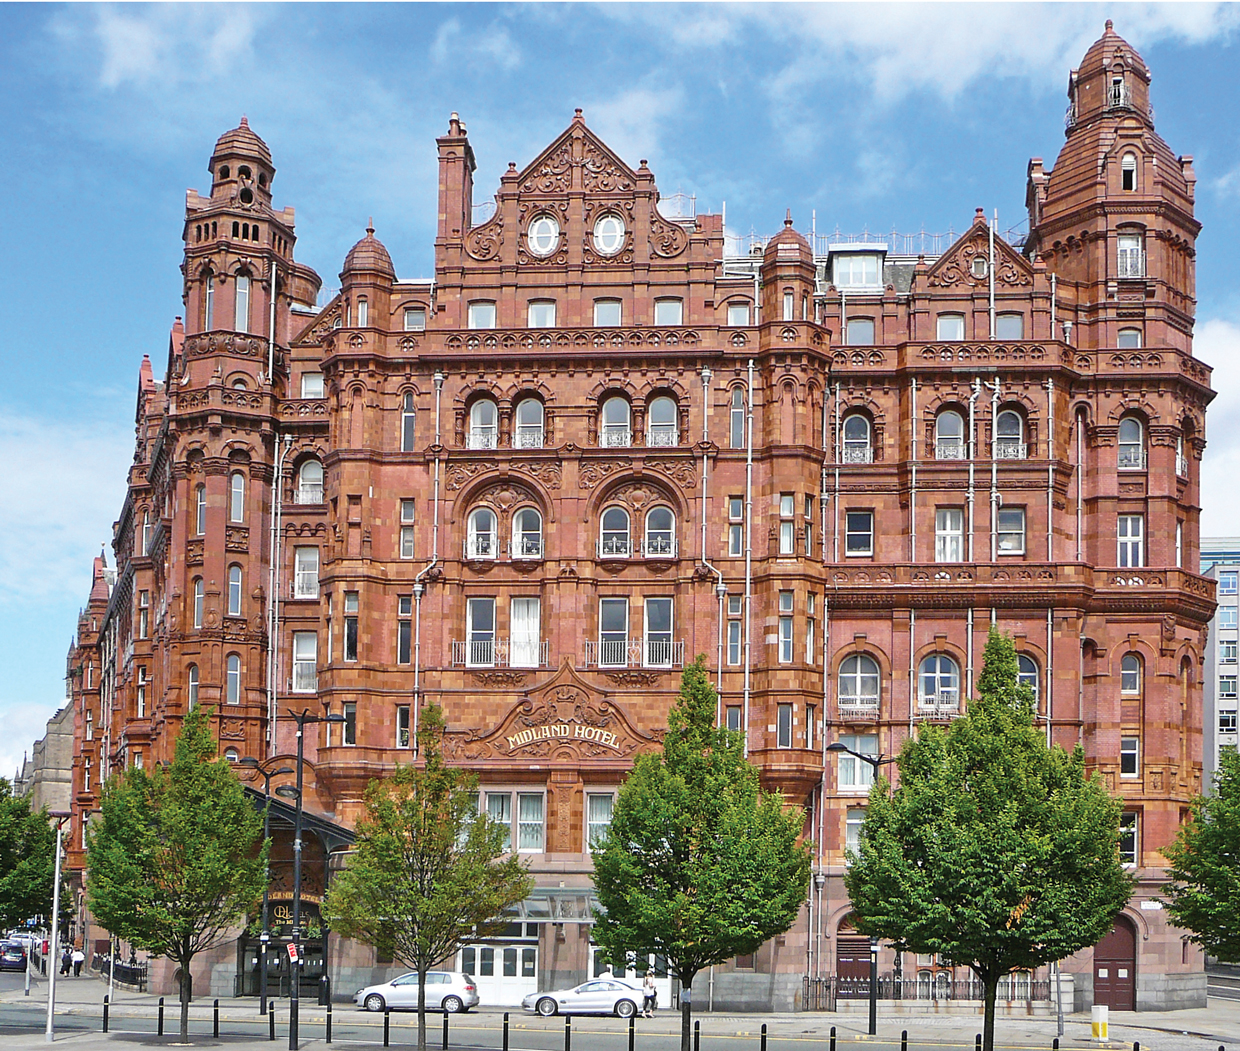 The Midland Hotel in Manchester, England, saw the creation of the International Music Managers Forum in 1992.